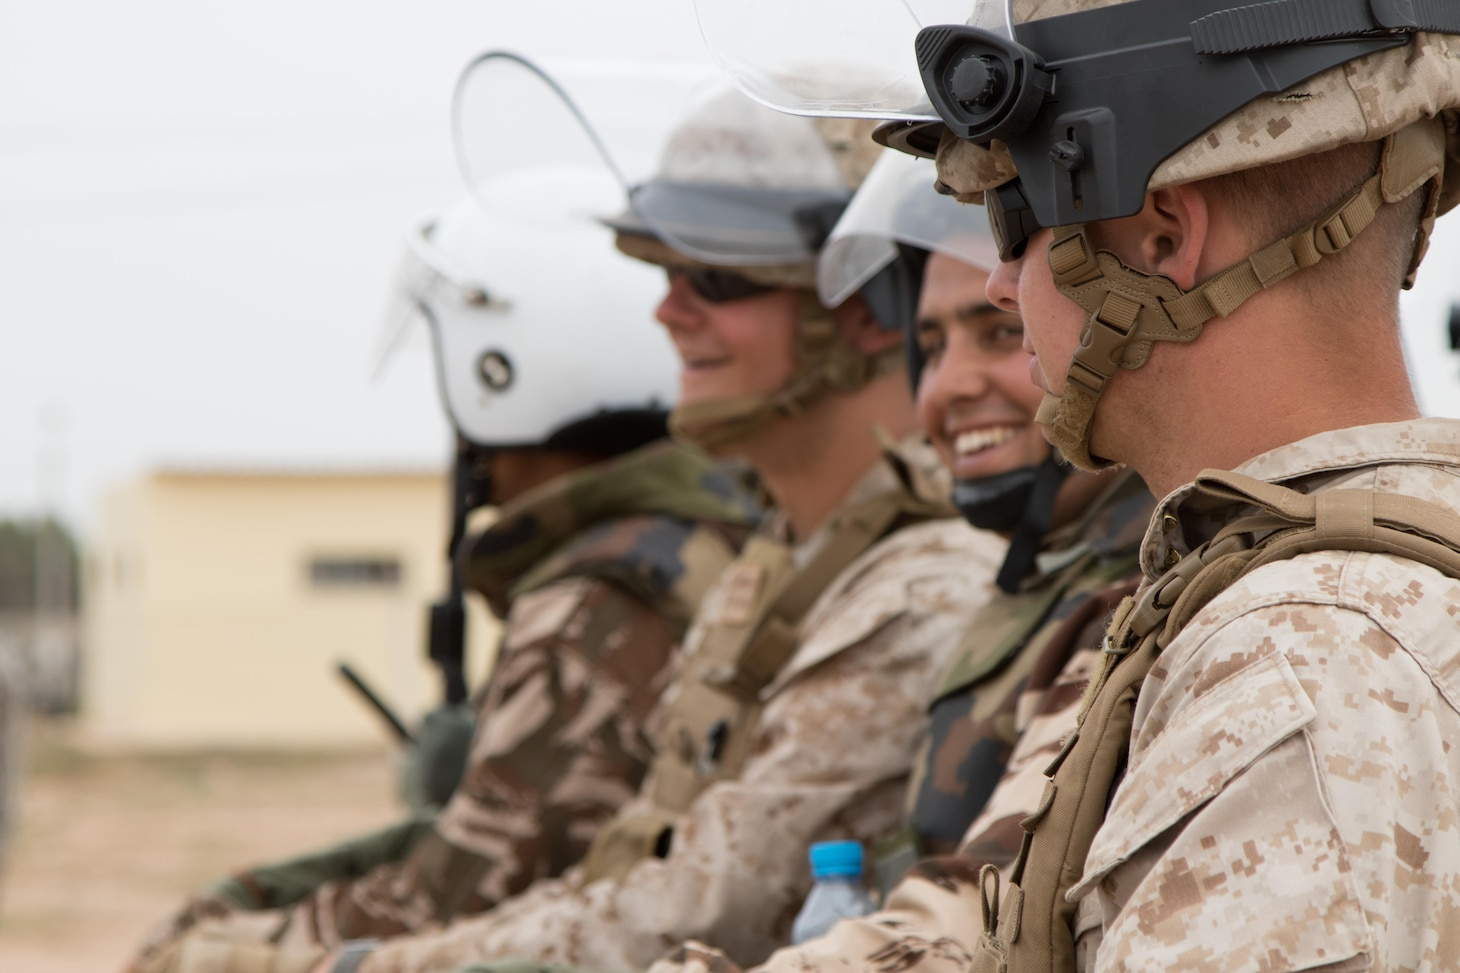 170424-A-UE565-0001 TIFNIT, Moroco (Apr. 24, 2017) Marine Company B, 4th Law Enforcement Battalion from Pittsburg, Pennsylvania, and Royal Moroccan Armed Forces enjoy a small break in crowd control training in Tifnit, Morocco, on April 24, 2017, during Exercise African Lion. Exercise African Lion is an annually scheduled, combined multilateral exercise designed to improve interoperability and mutual understanding of each nation's tactics, techniques and procedures. (U.S. Marine Corps photo by Sgt. Christopher Osburn/ Released)